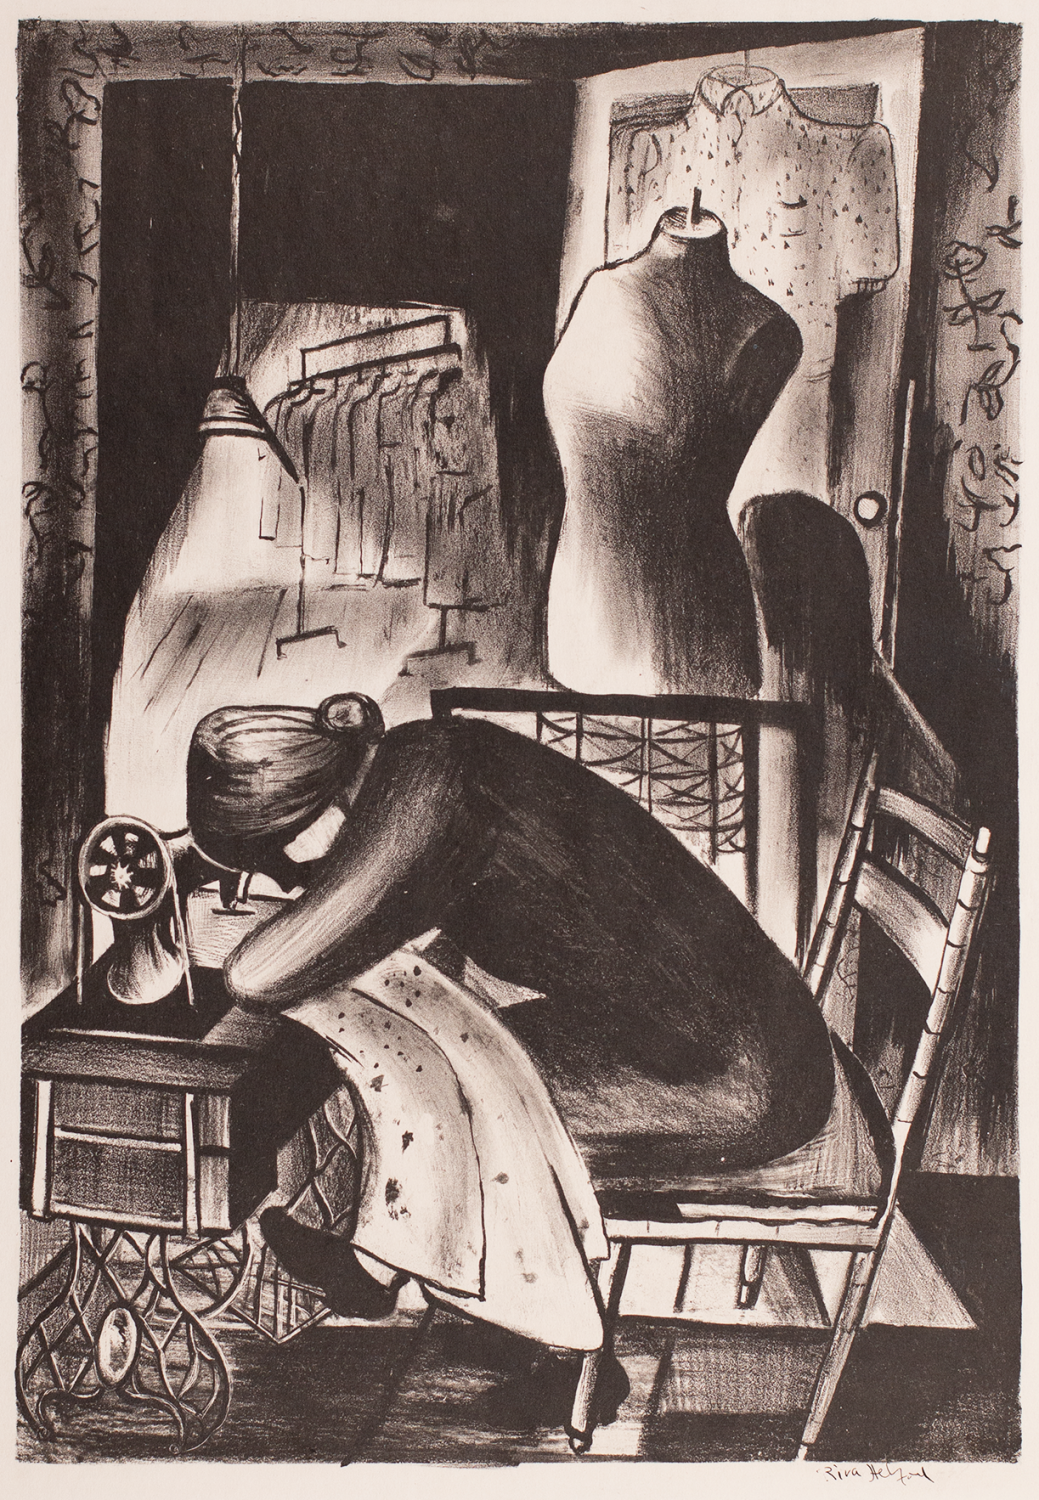 Black and white print of a woman whose face is in shadow slumped over a sewing machine. Her body posture shows exhaustion.